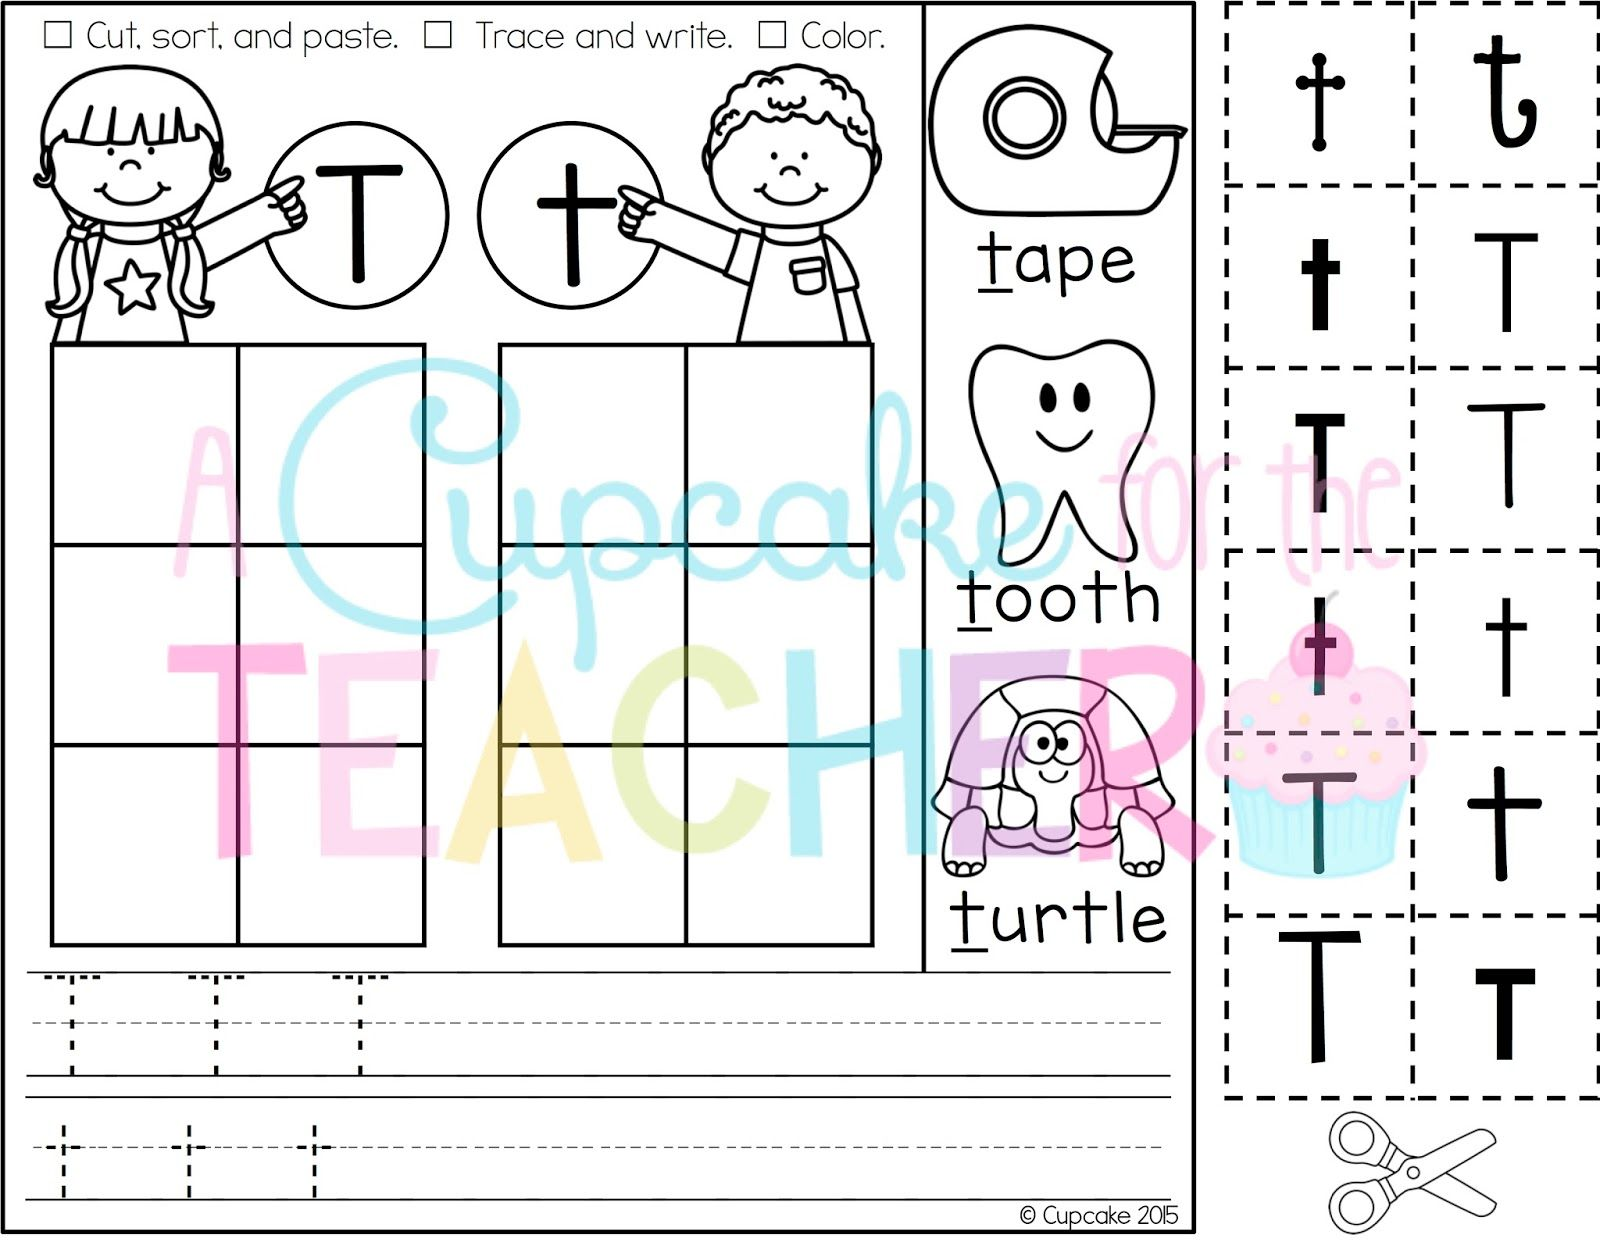 Practice Letter Identification And Formation With Letter Sorts A Z Printables